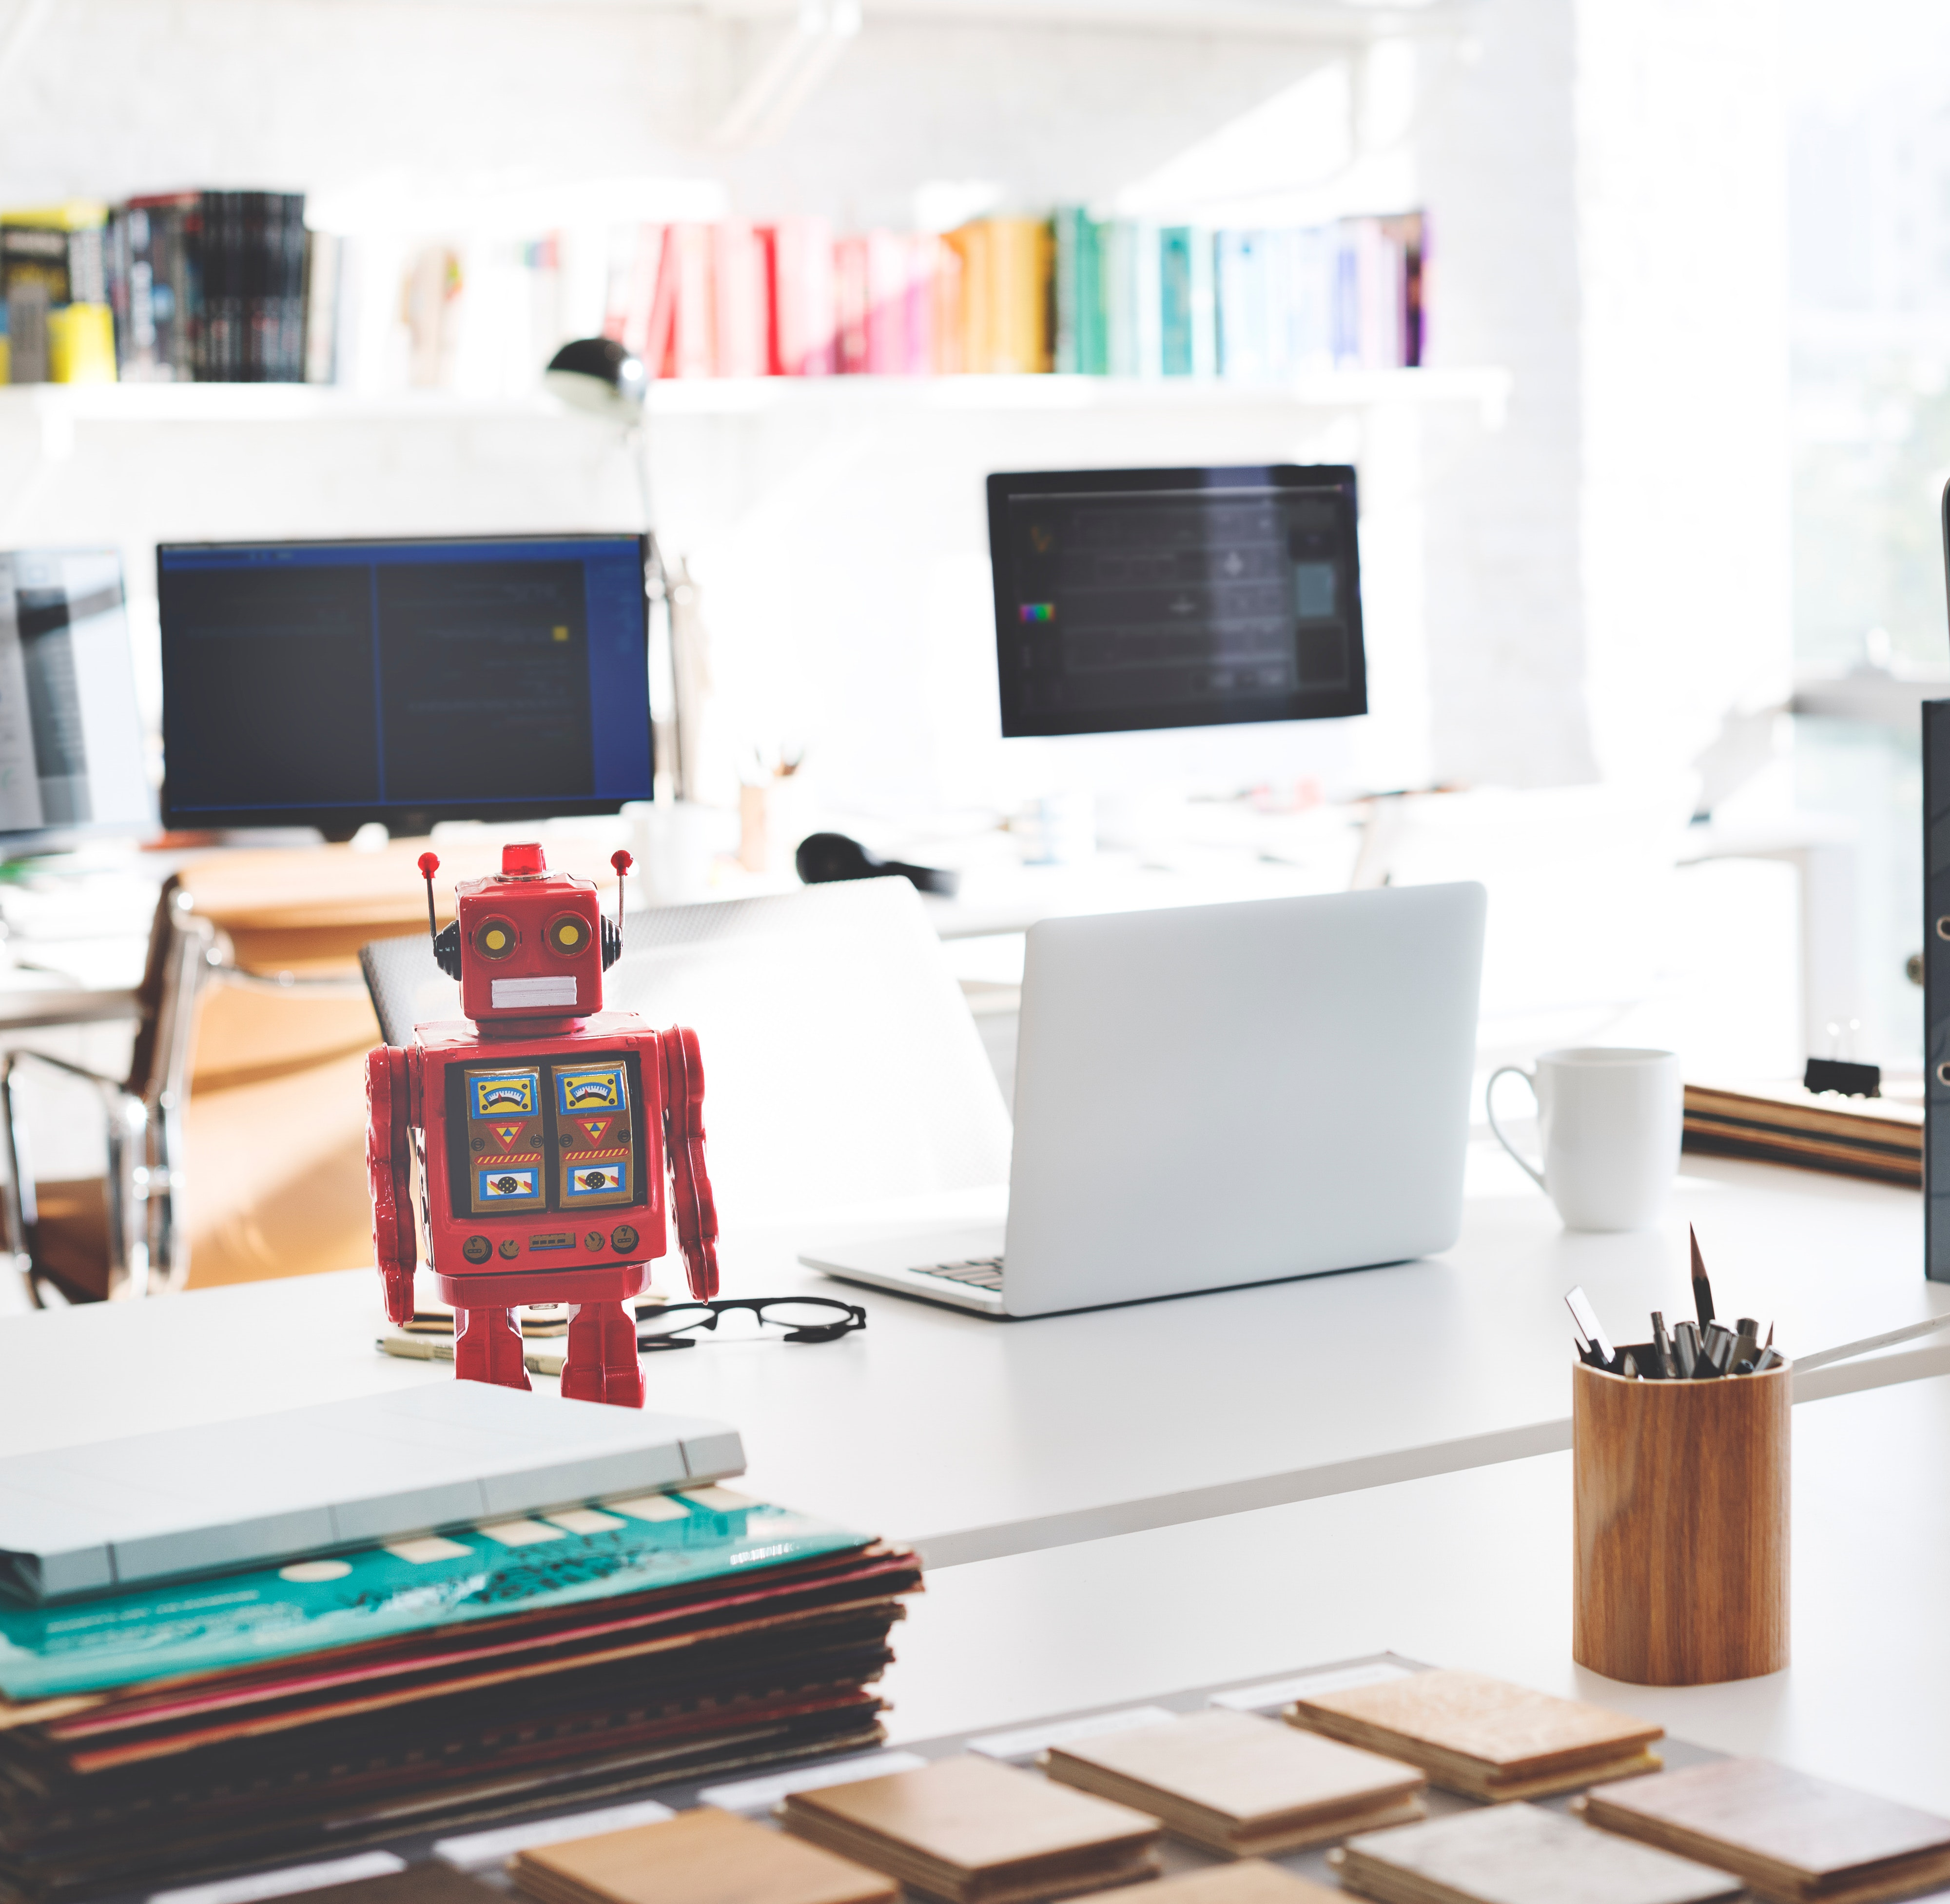 Machine Learning & AI for Business: Getting Started